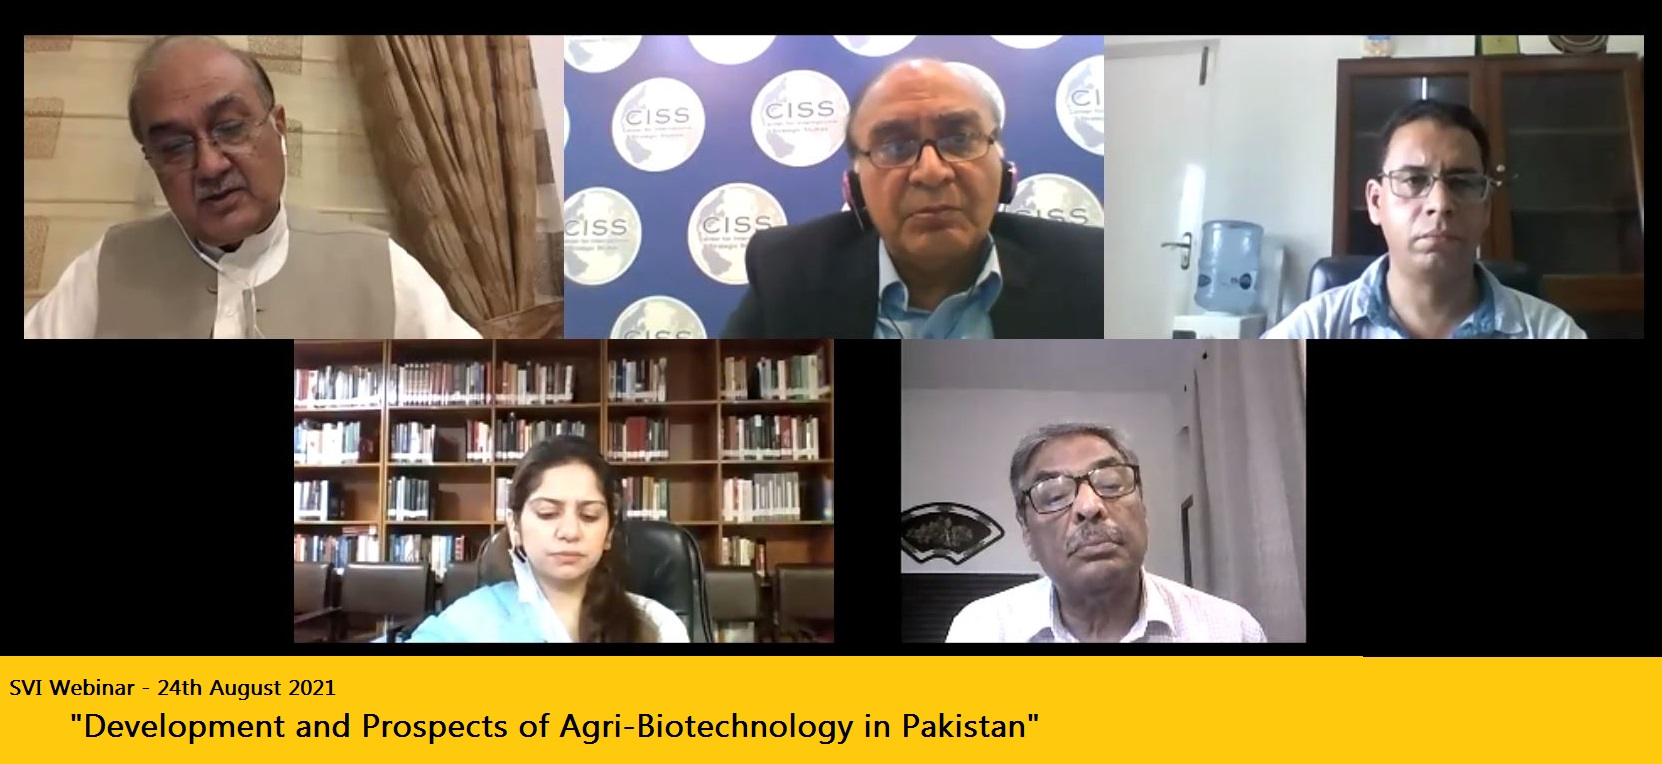 Development and Prospects of Agri-Biotechnology in Pakistan on 24 August 2021